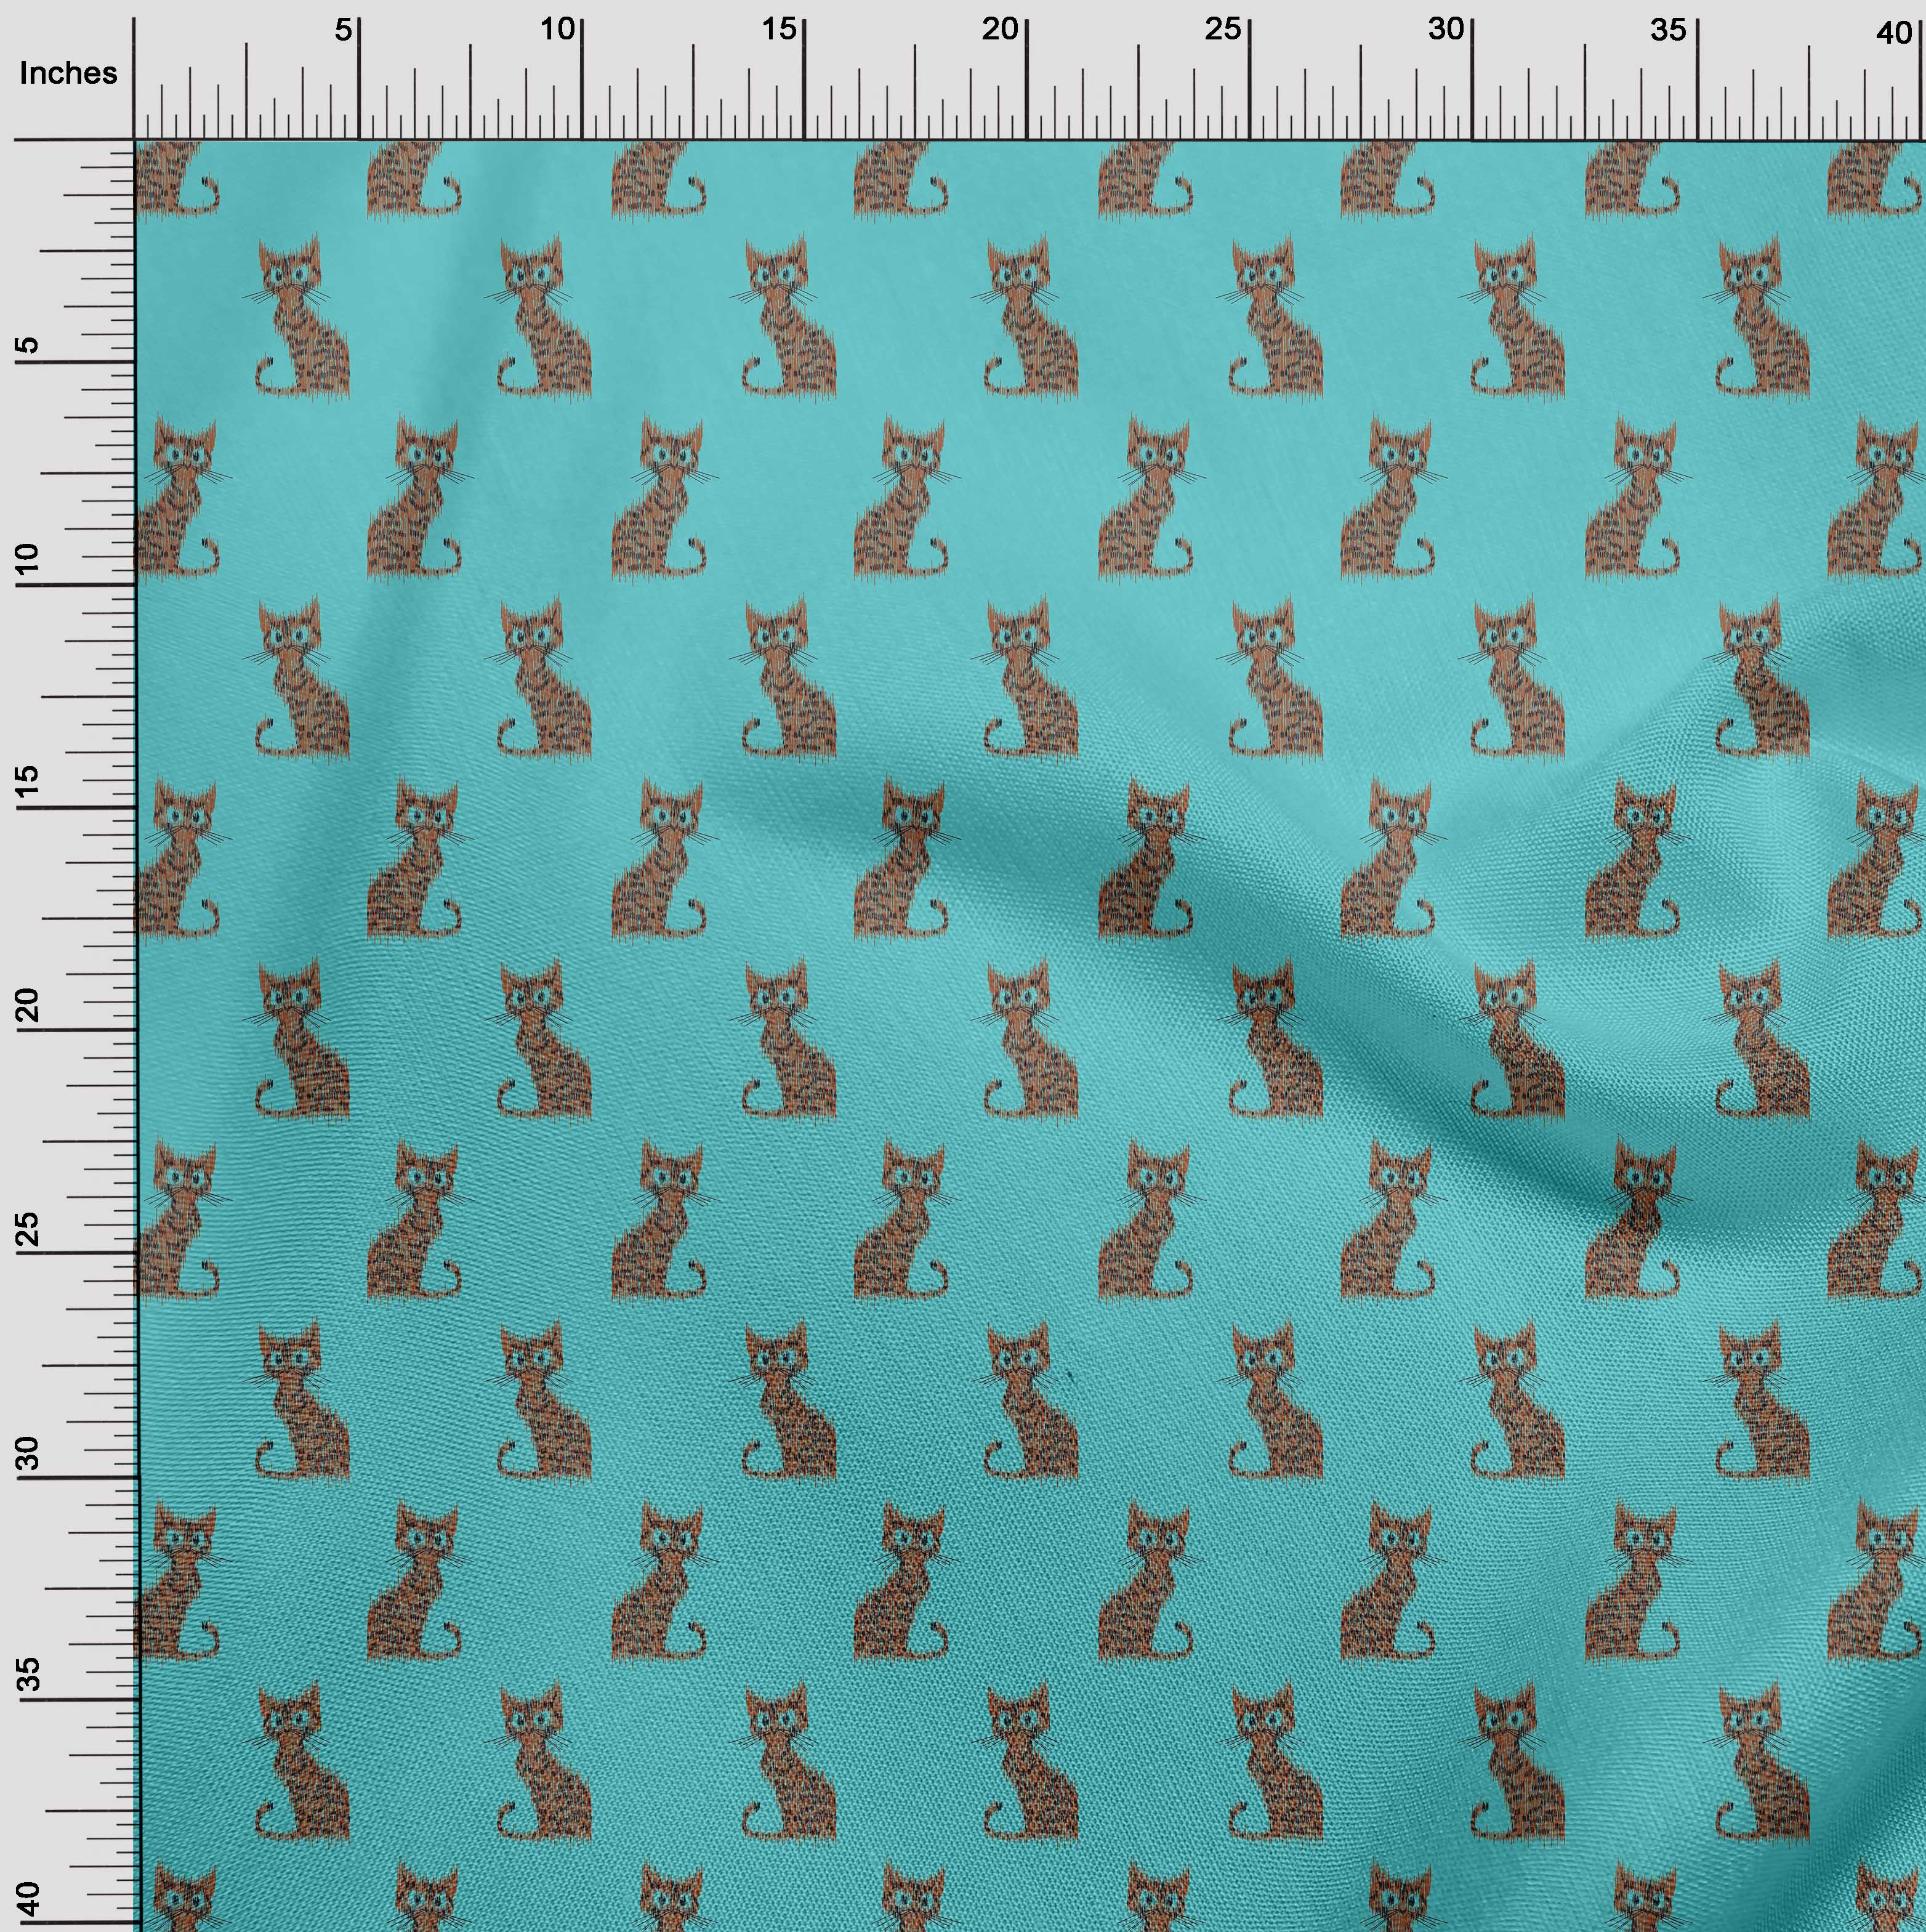 oneOone-Katze-Ikat-Printed-Craft-Fabric-By-The-Meter-IK-1203A-1 Indexbild 22